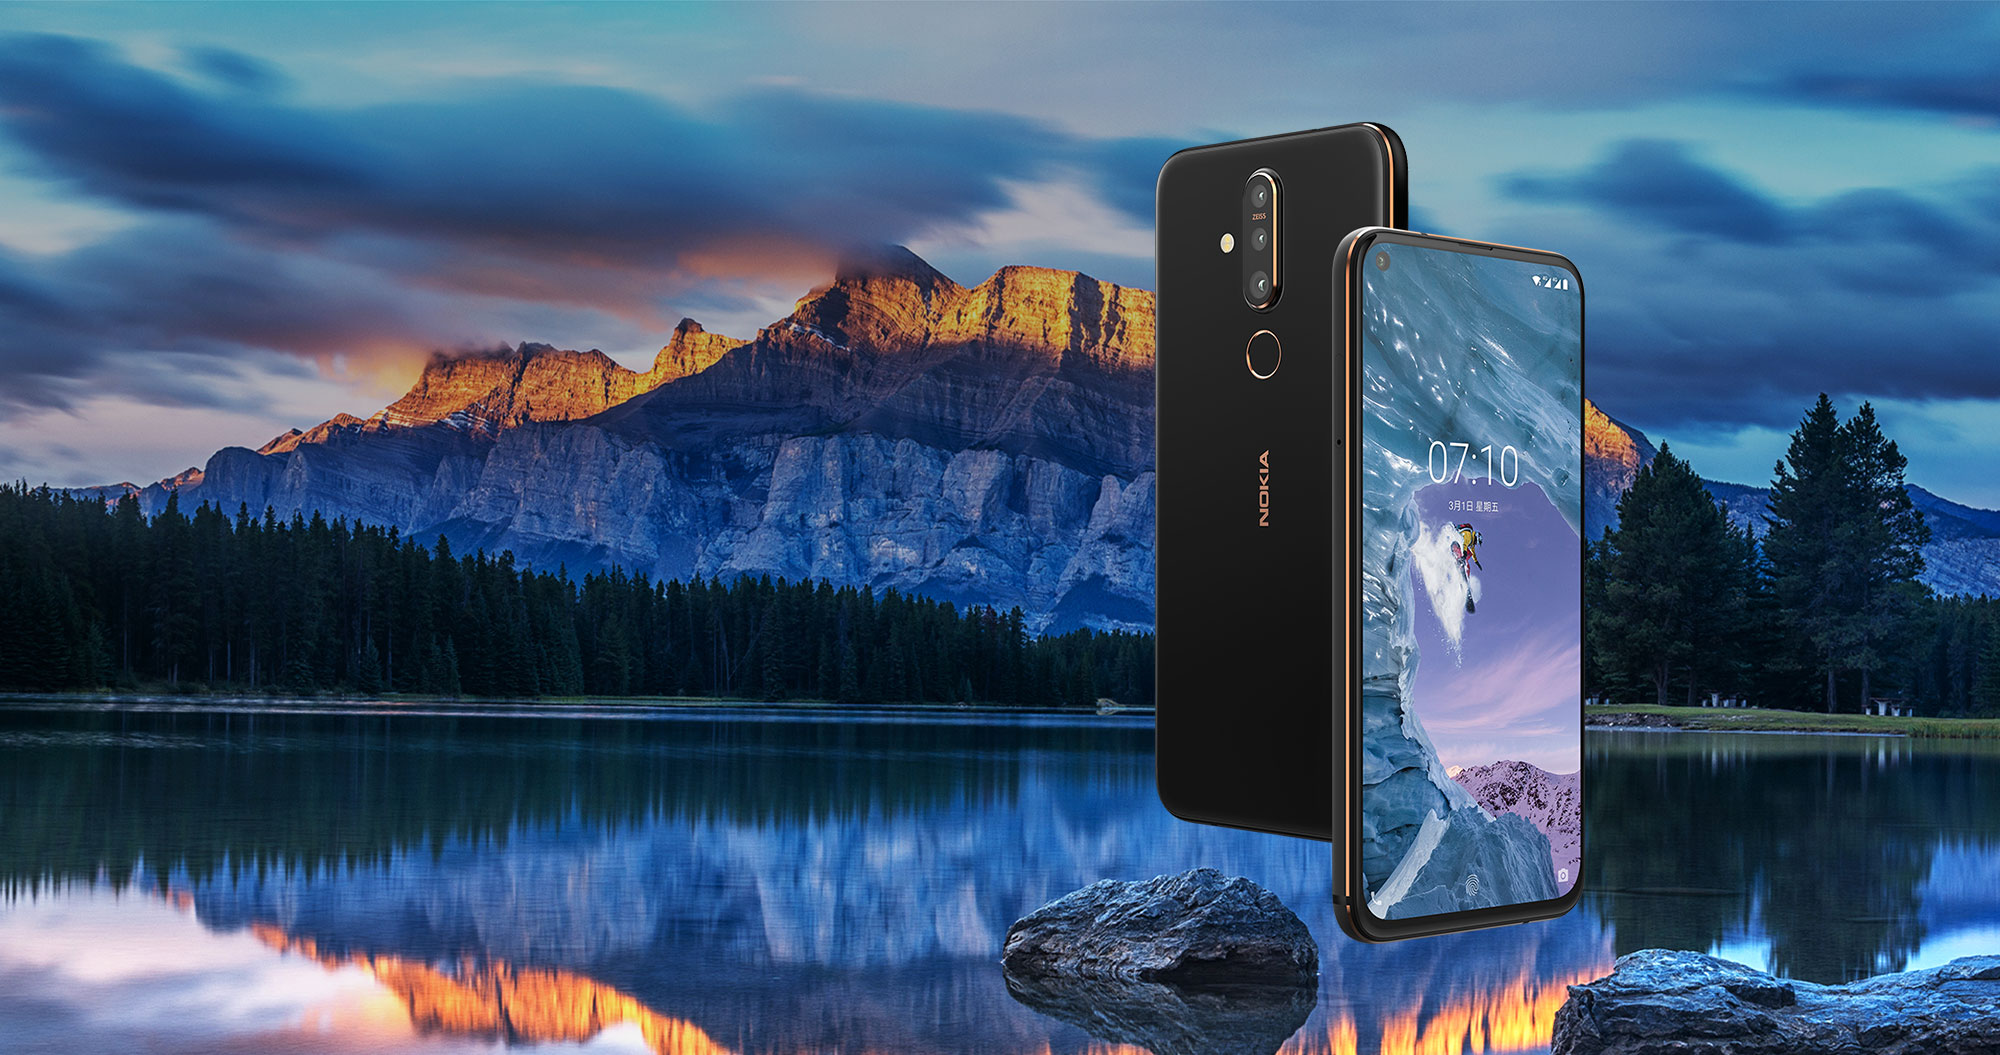 Nokia X71 is now official with hole-punch display & triple cameras